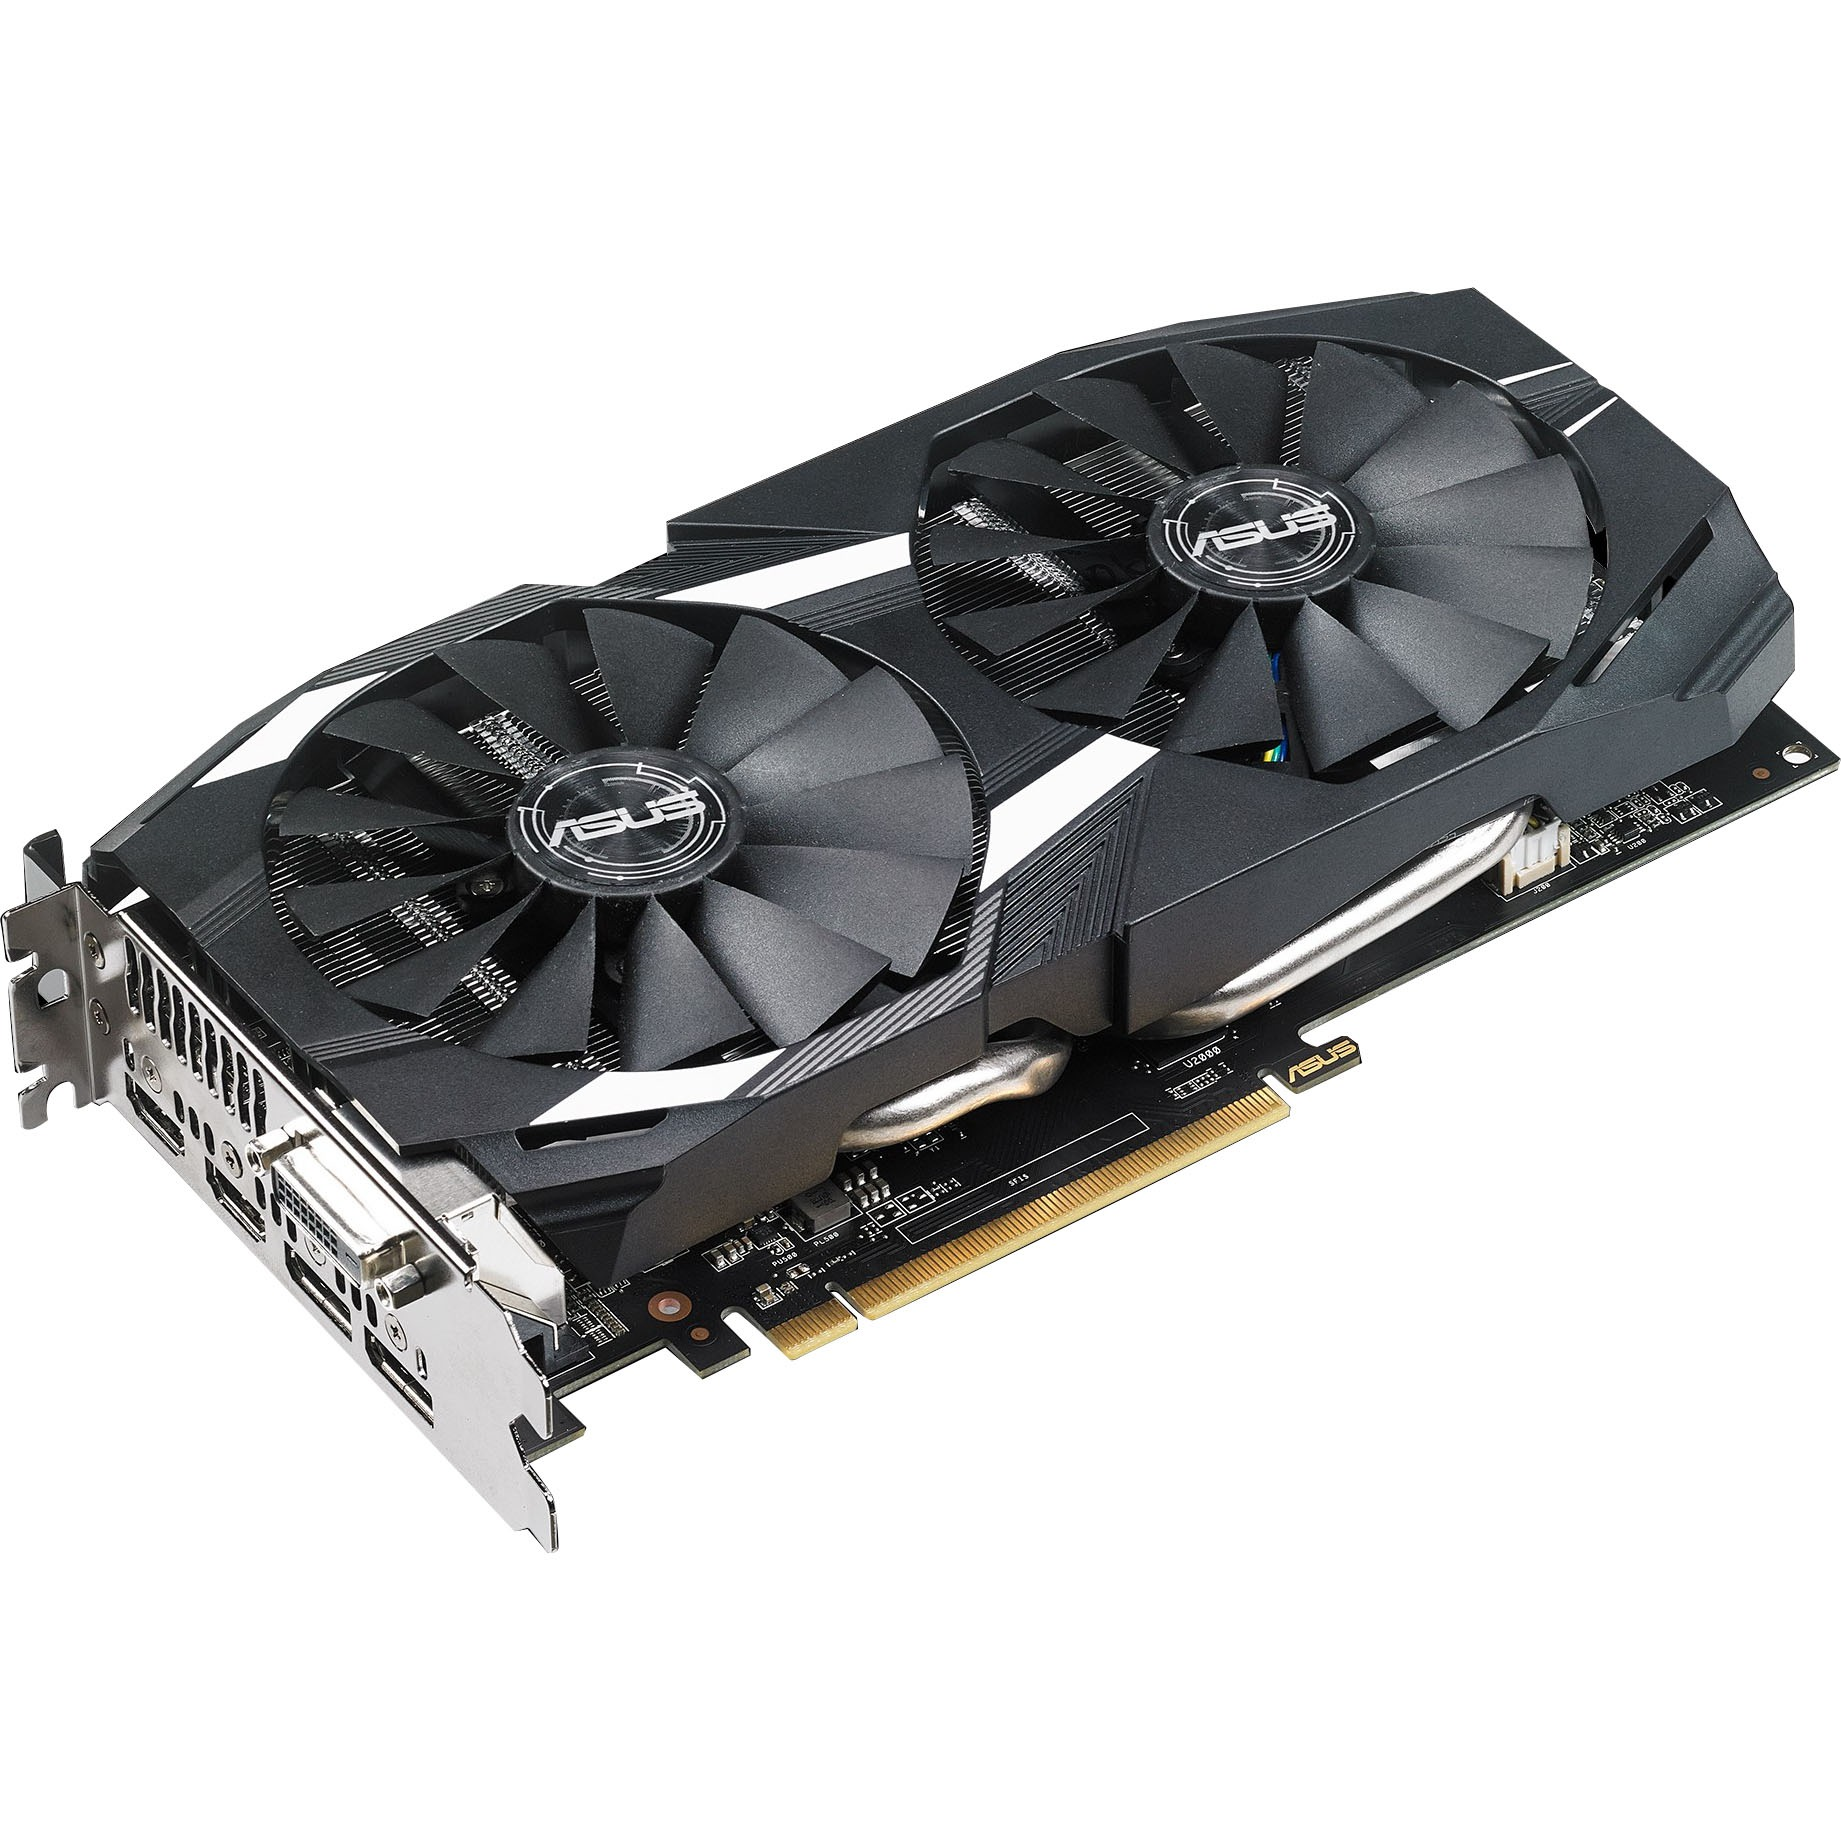 Asus Dual-Rx580-O8G Graphics Card - DUAL-RX580-O8G Gaming Bundle Included